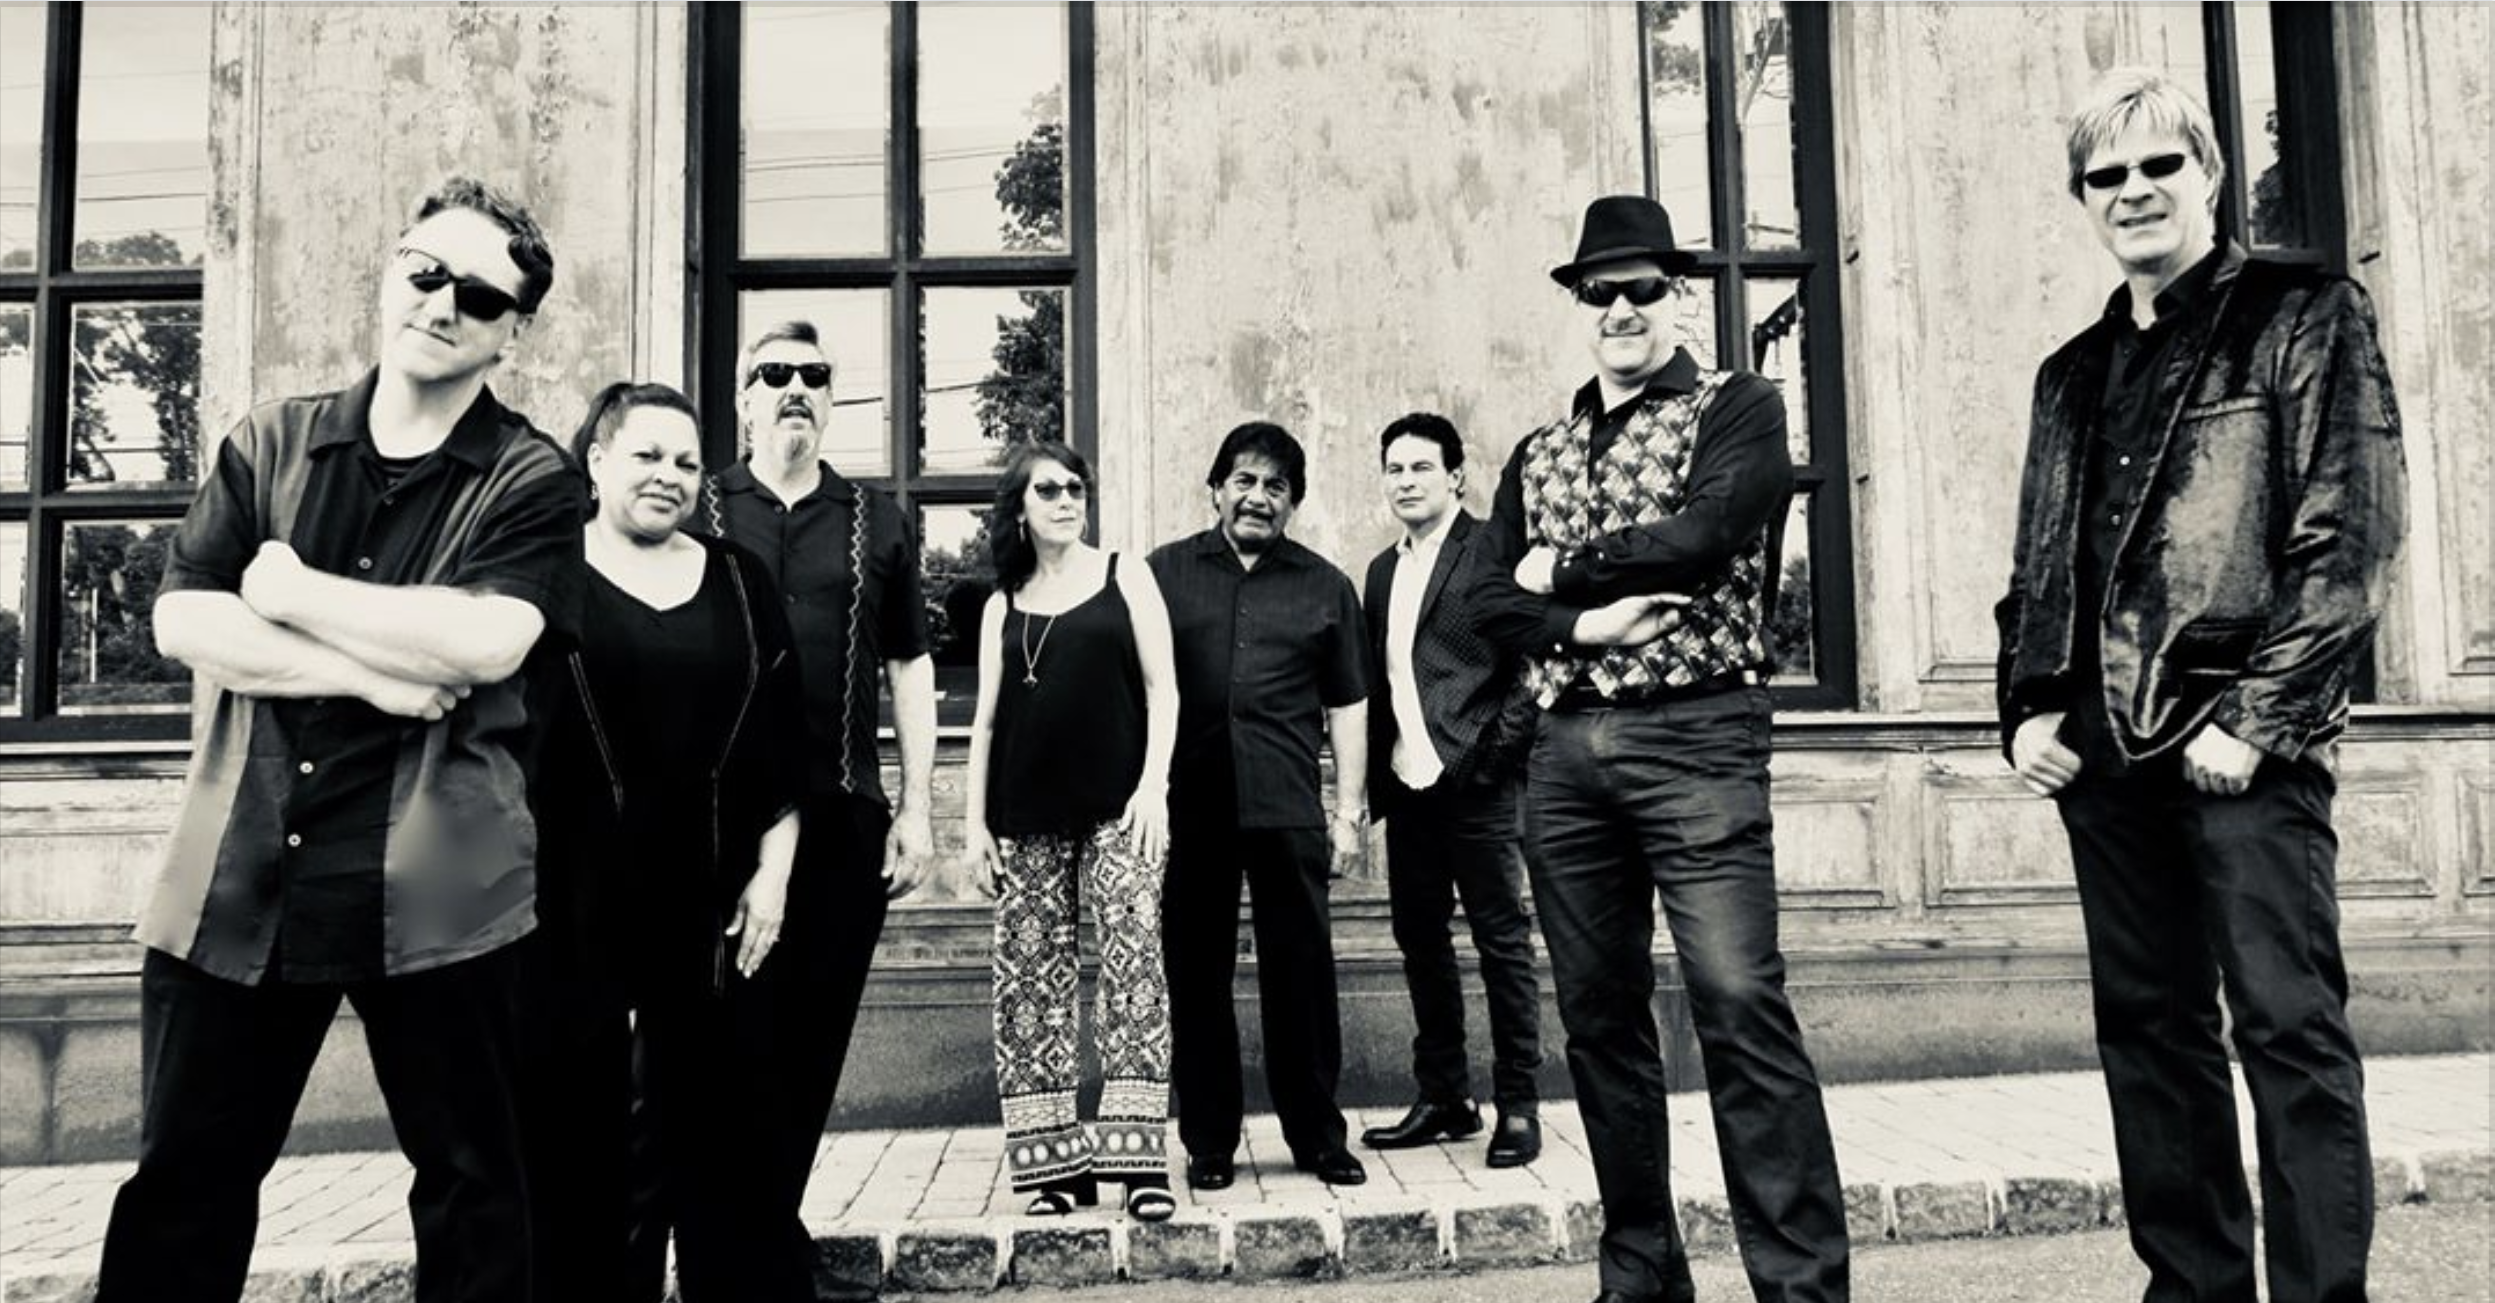 A professional shot of The Royal Scam, a steely dan cover band made up of 8 people, posing in the street.